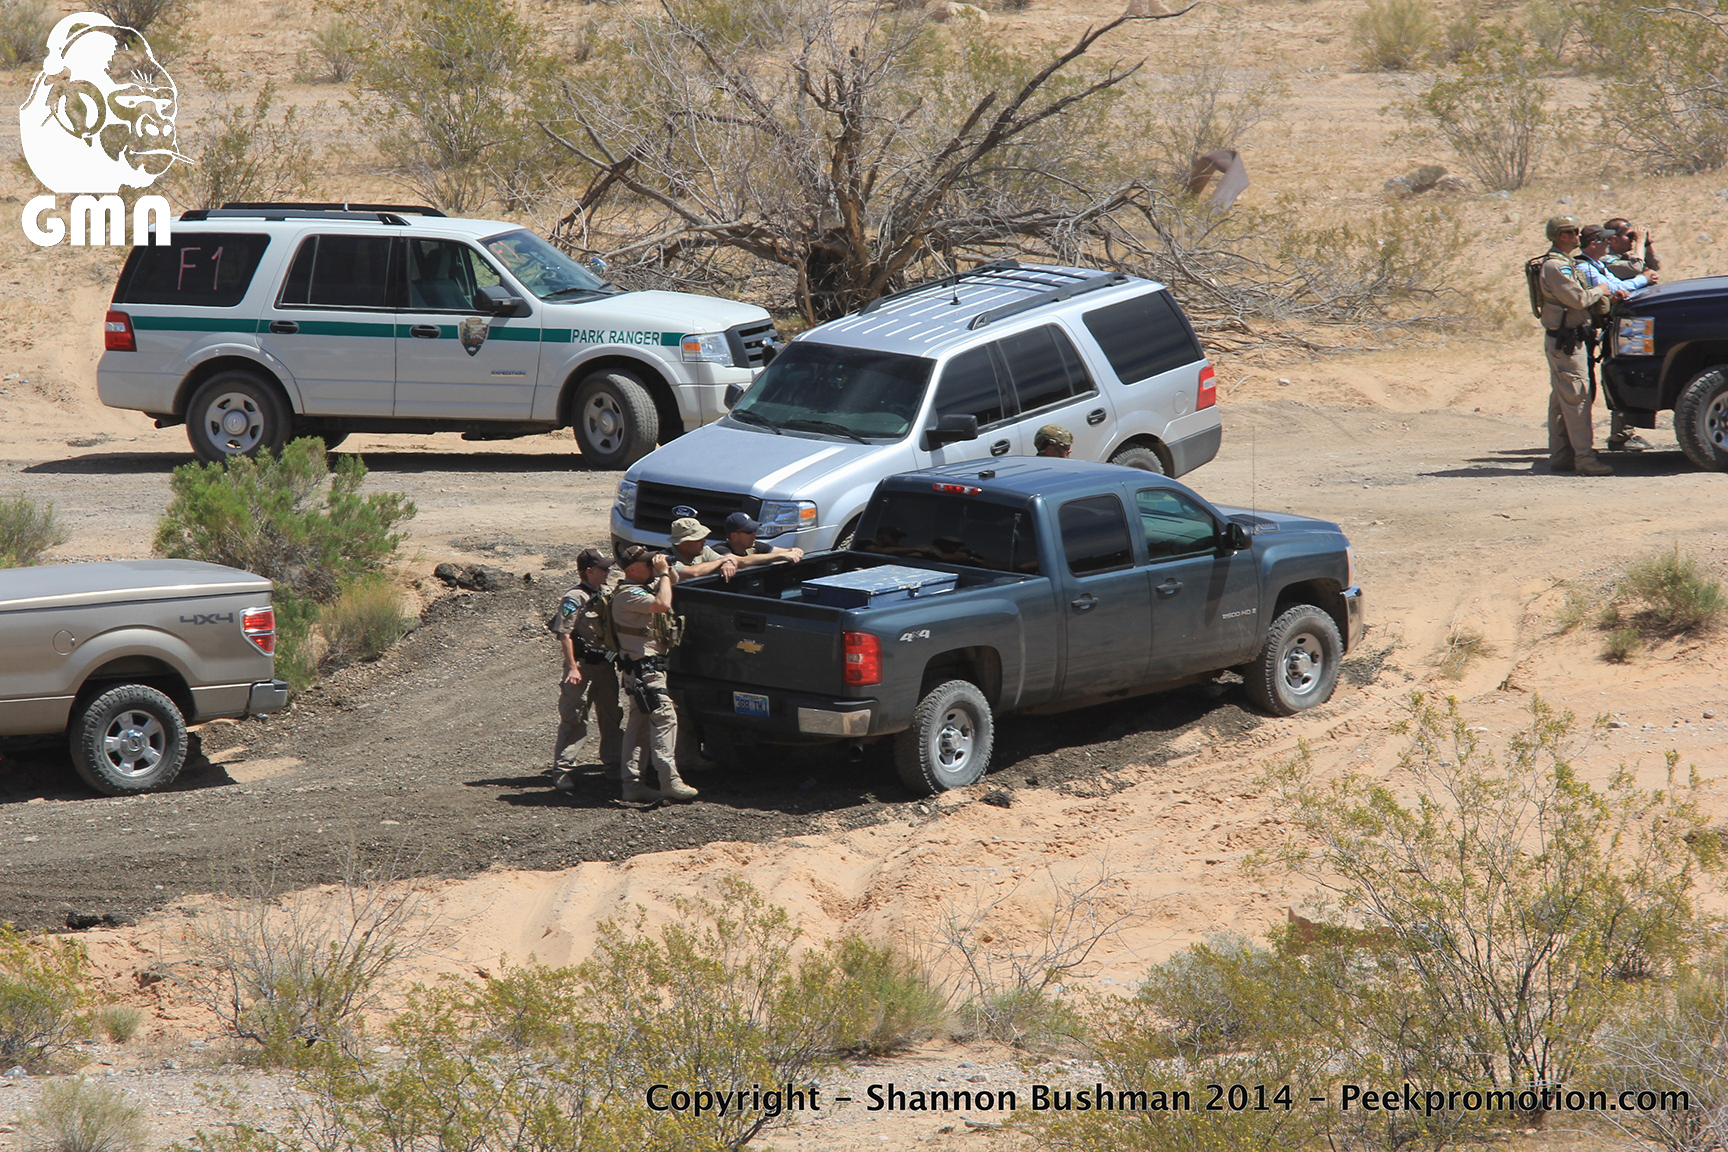 21WIREf-Bundy-Fed-Standoff-April-12-2014-Copyright-GMN